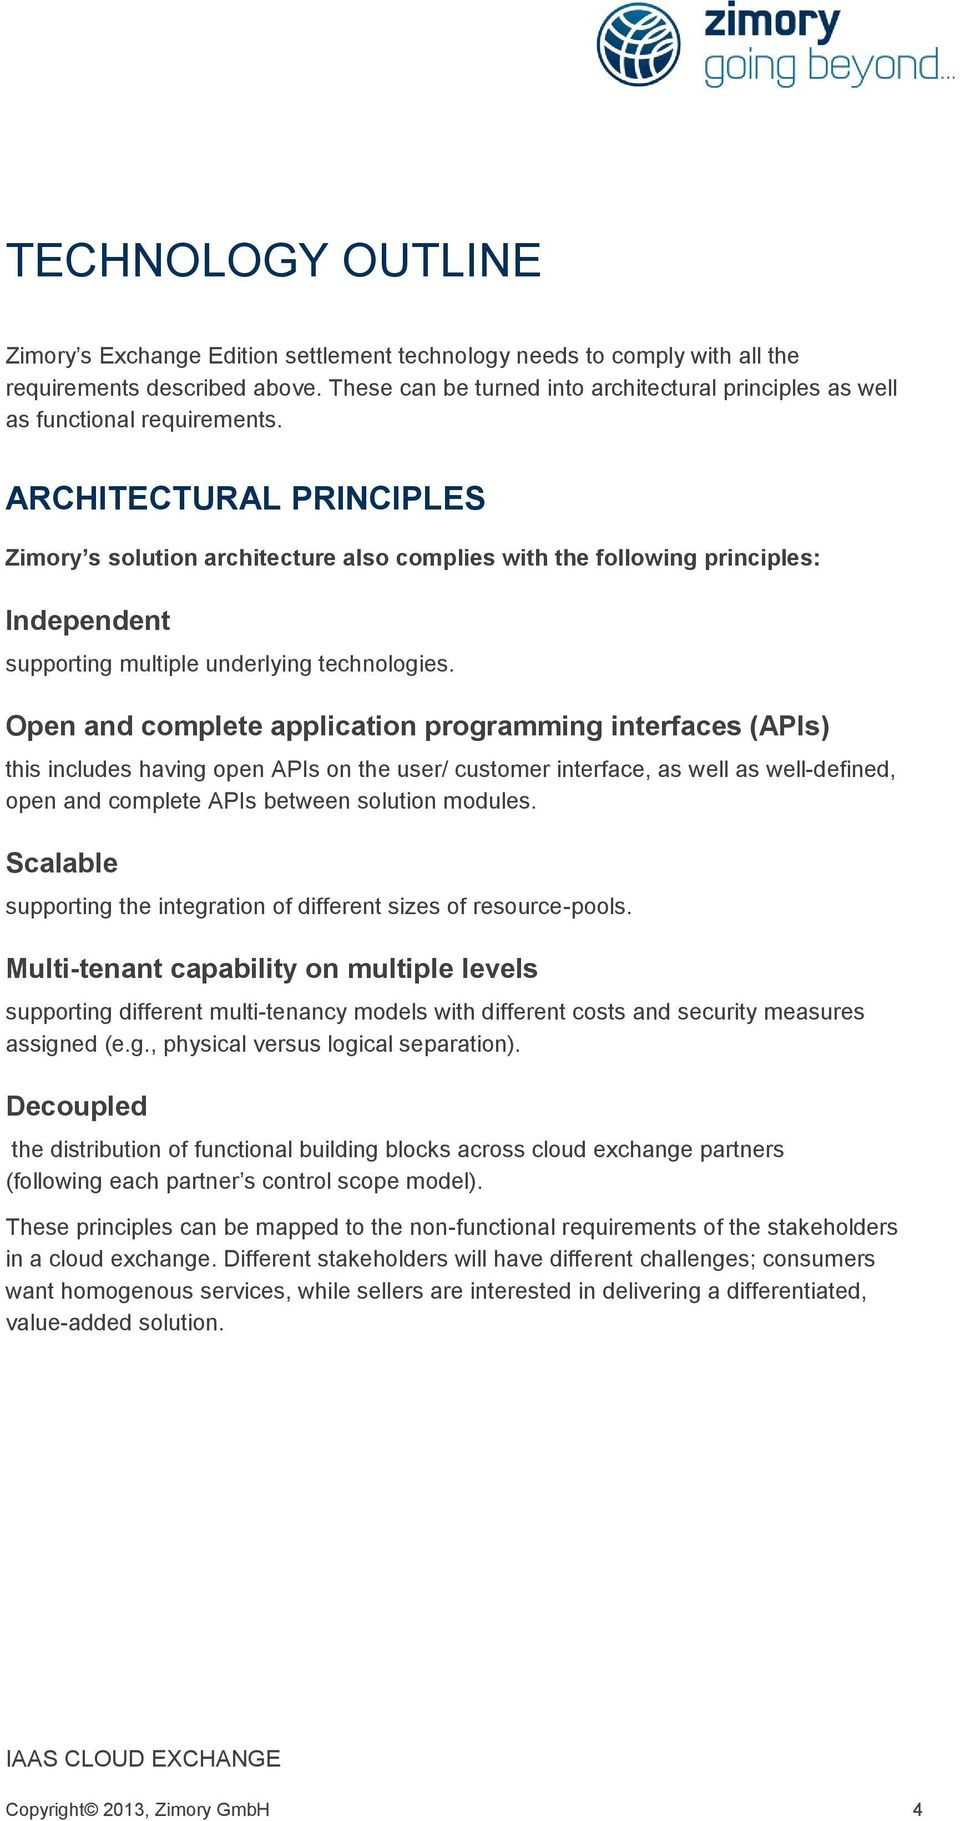 ARCHITECTURAL PRINCIPLES Zimory s solution architecture also complies with the following principles: Independent supporting multiple underlying technologies.